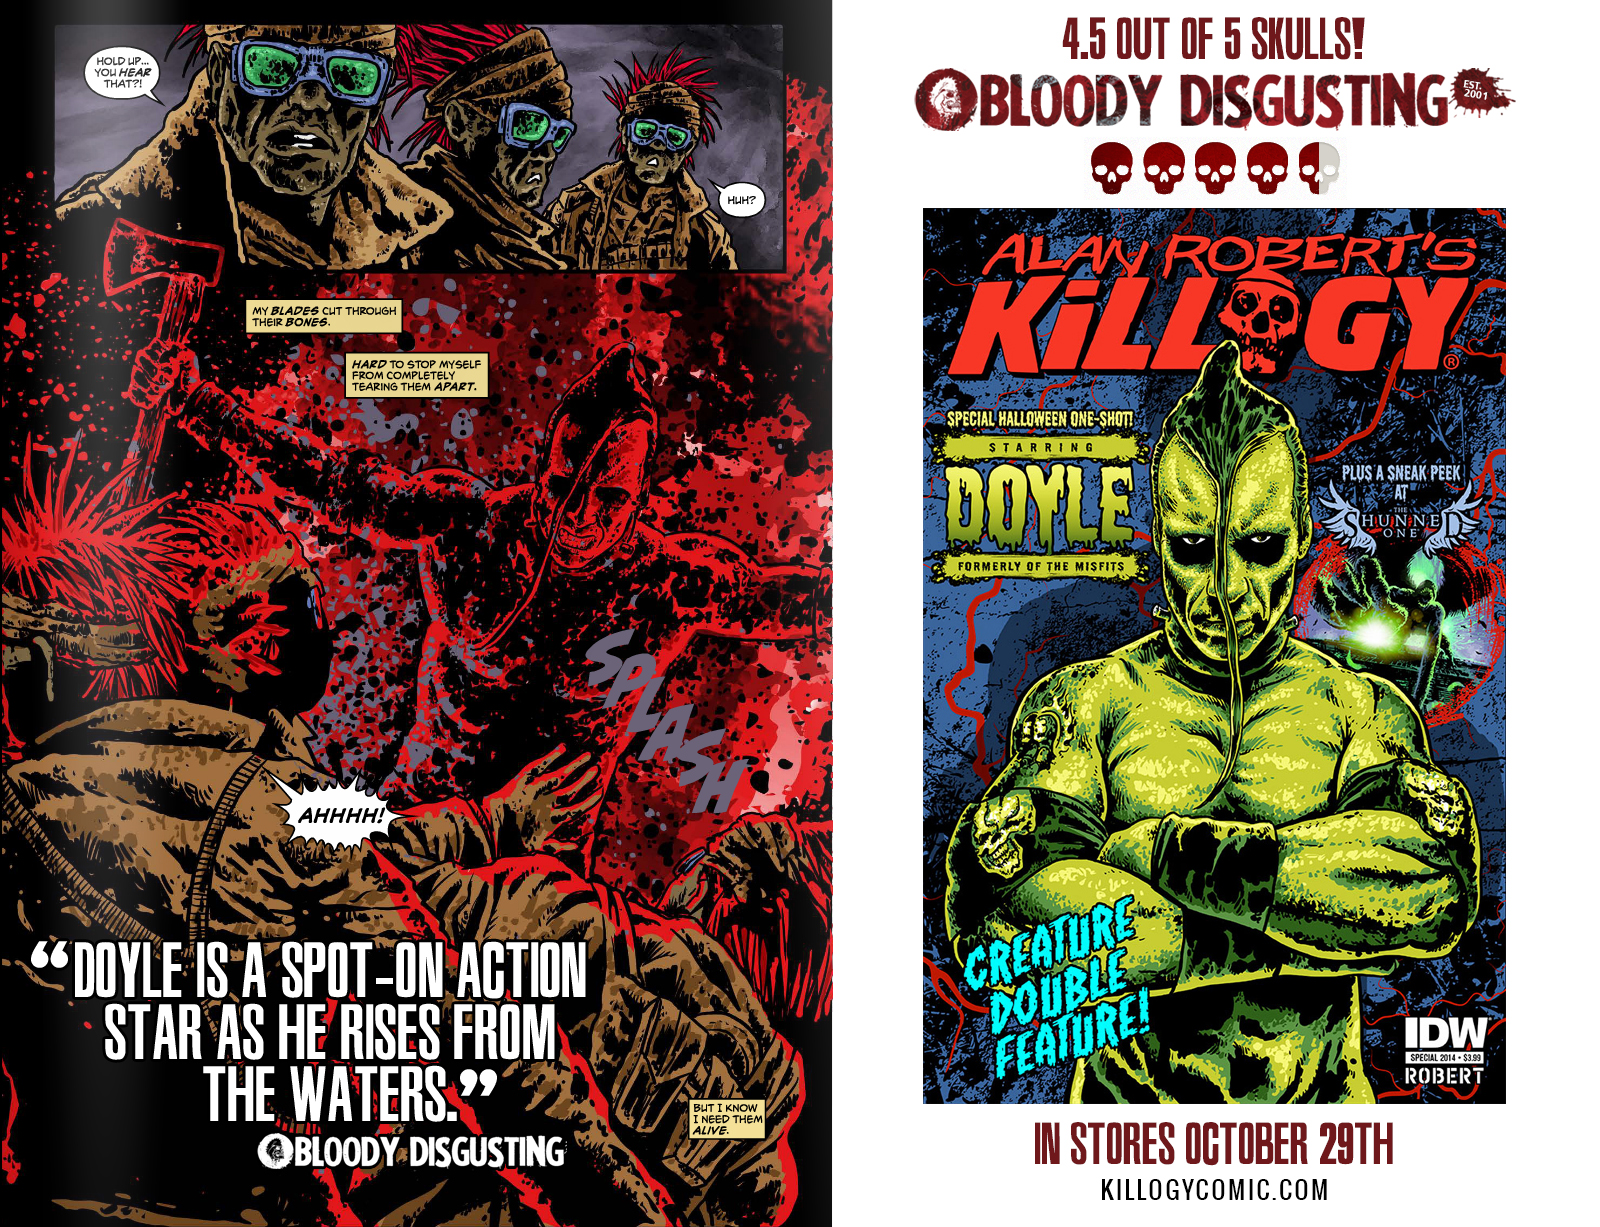 Killogy Halloween Special Gets 4.5 out of 5 Skulls on Bloody Disgusting!